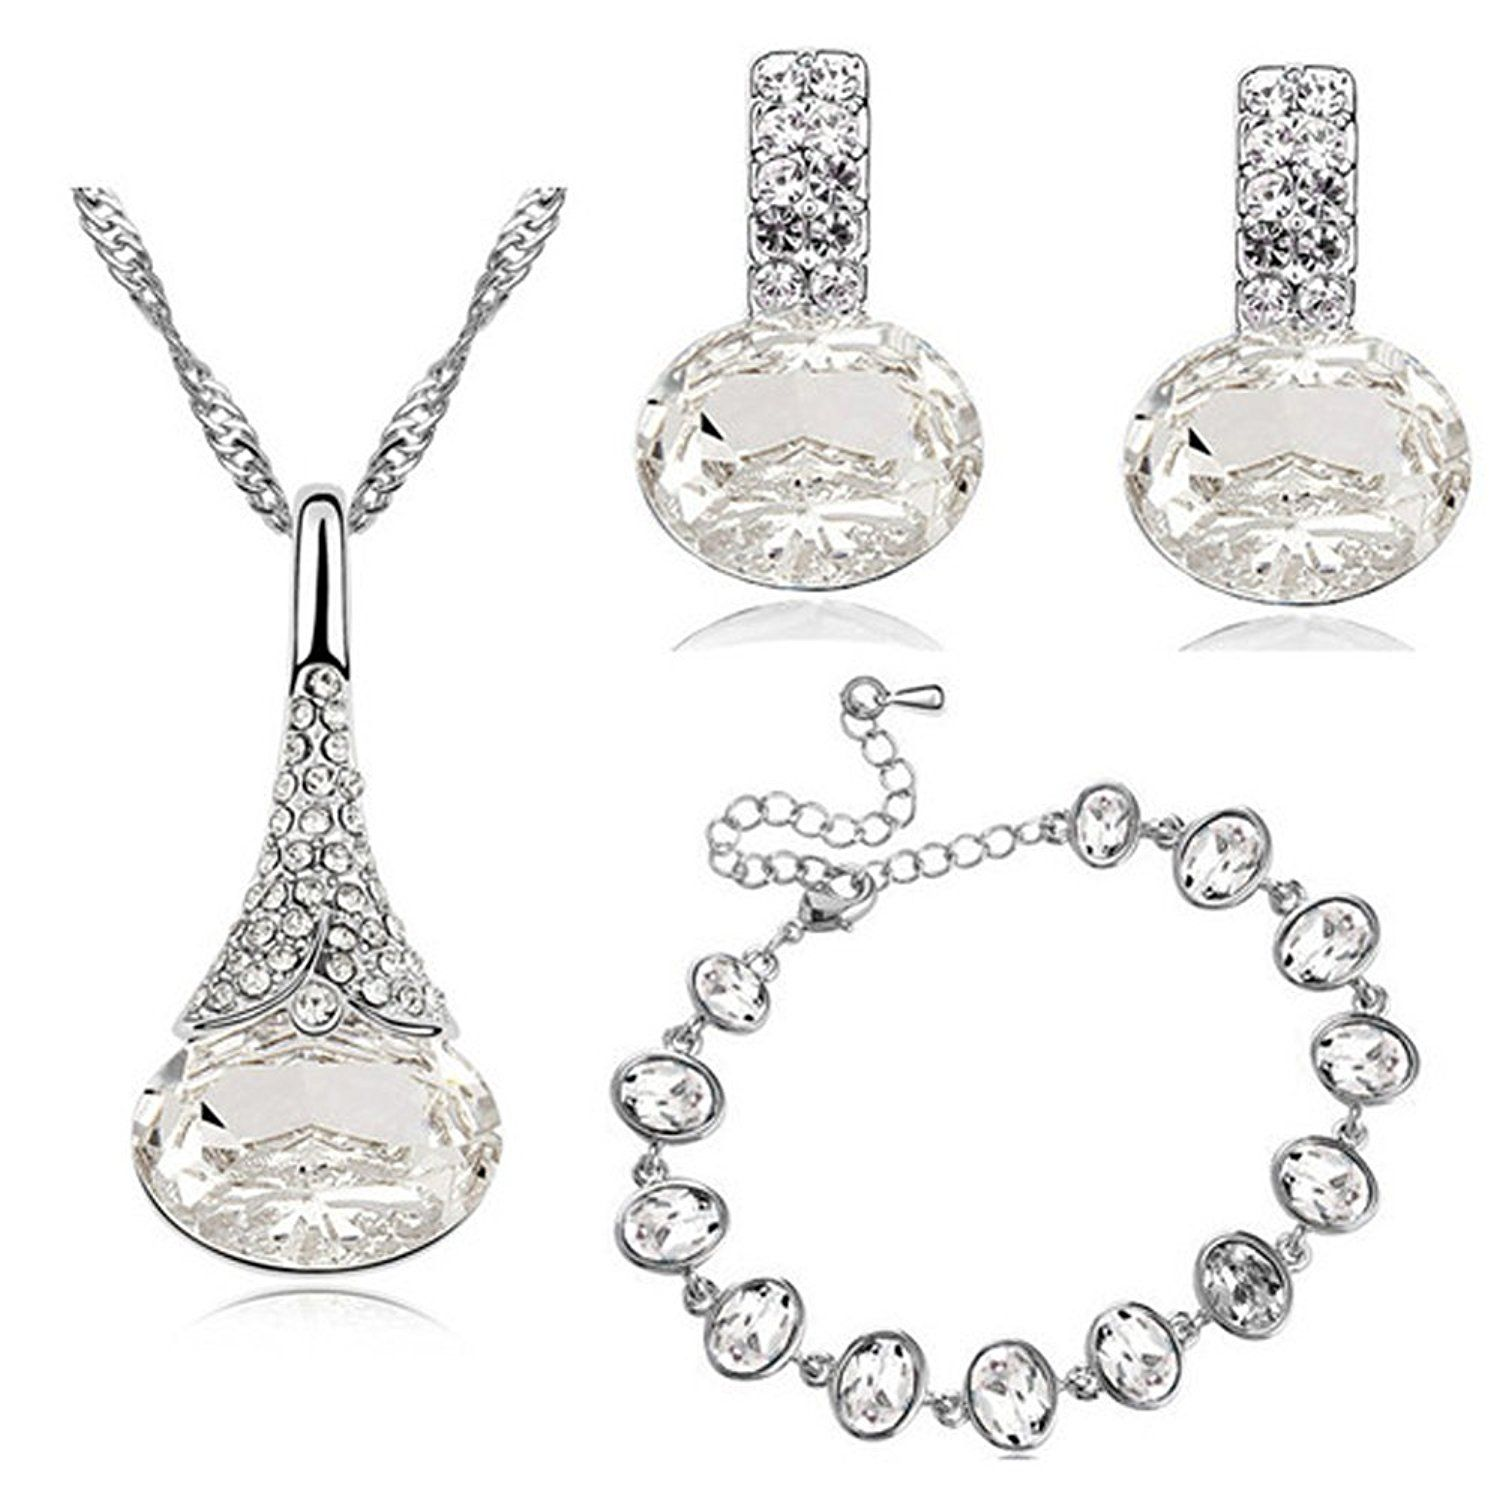 Diamante white bridal jewellery set earrings bracelet and necklace